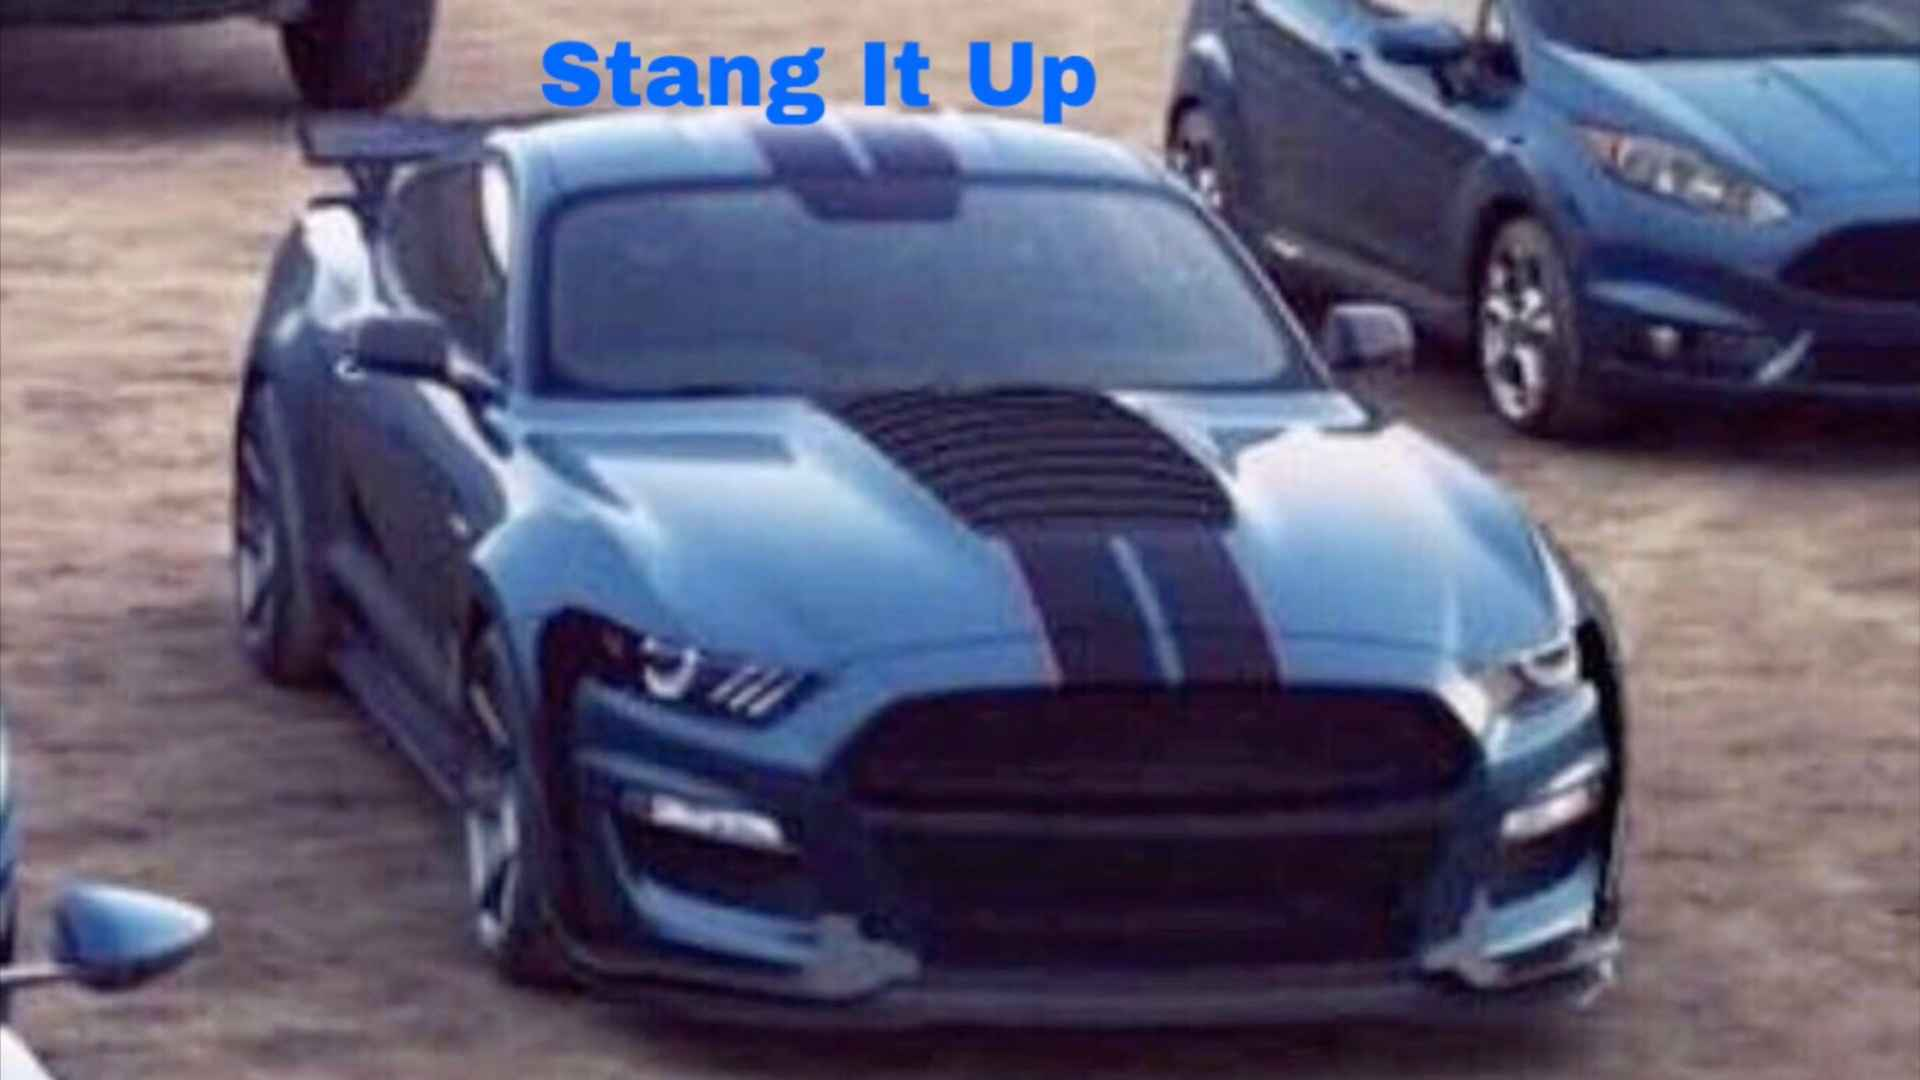 39 New 2020 Ford Mustang Shelby Gt 350 Price and Review for 2020 Ford Mustang Shelby Gt 350